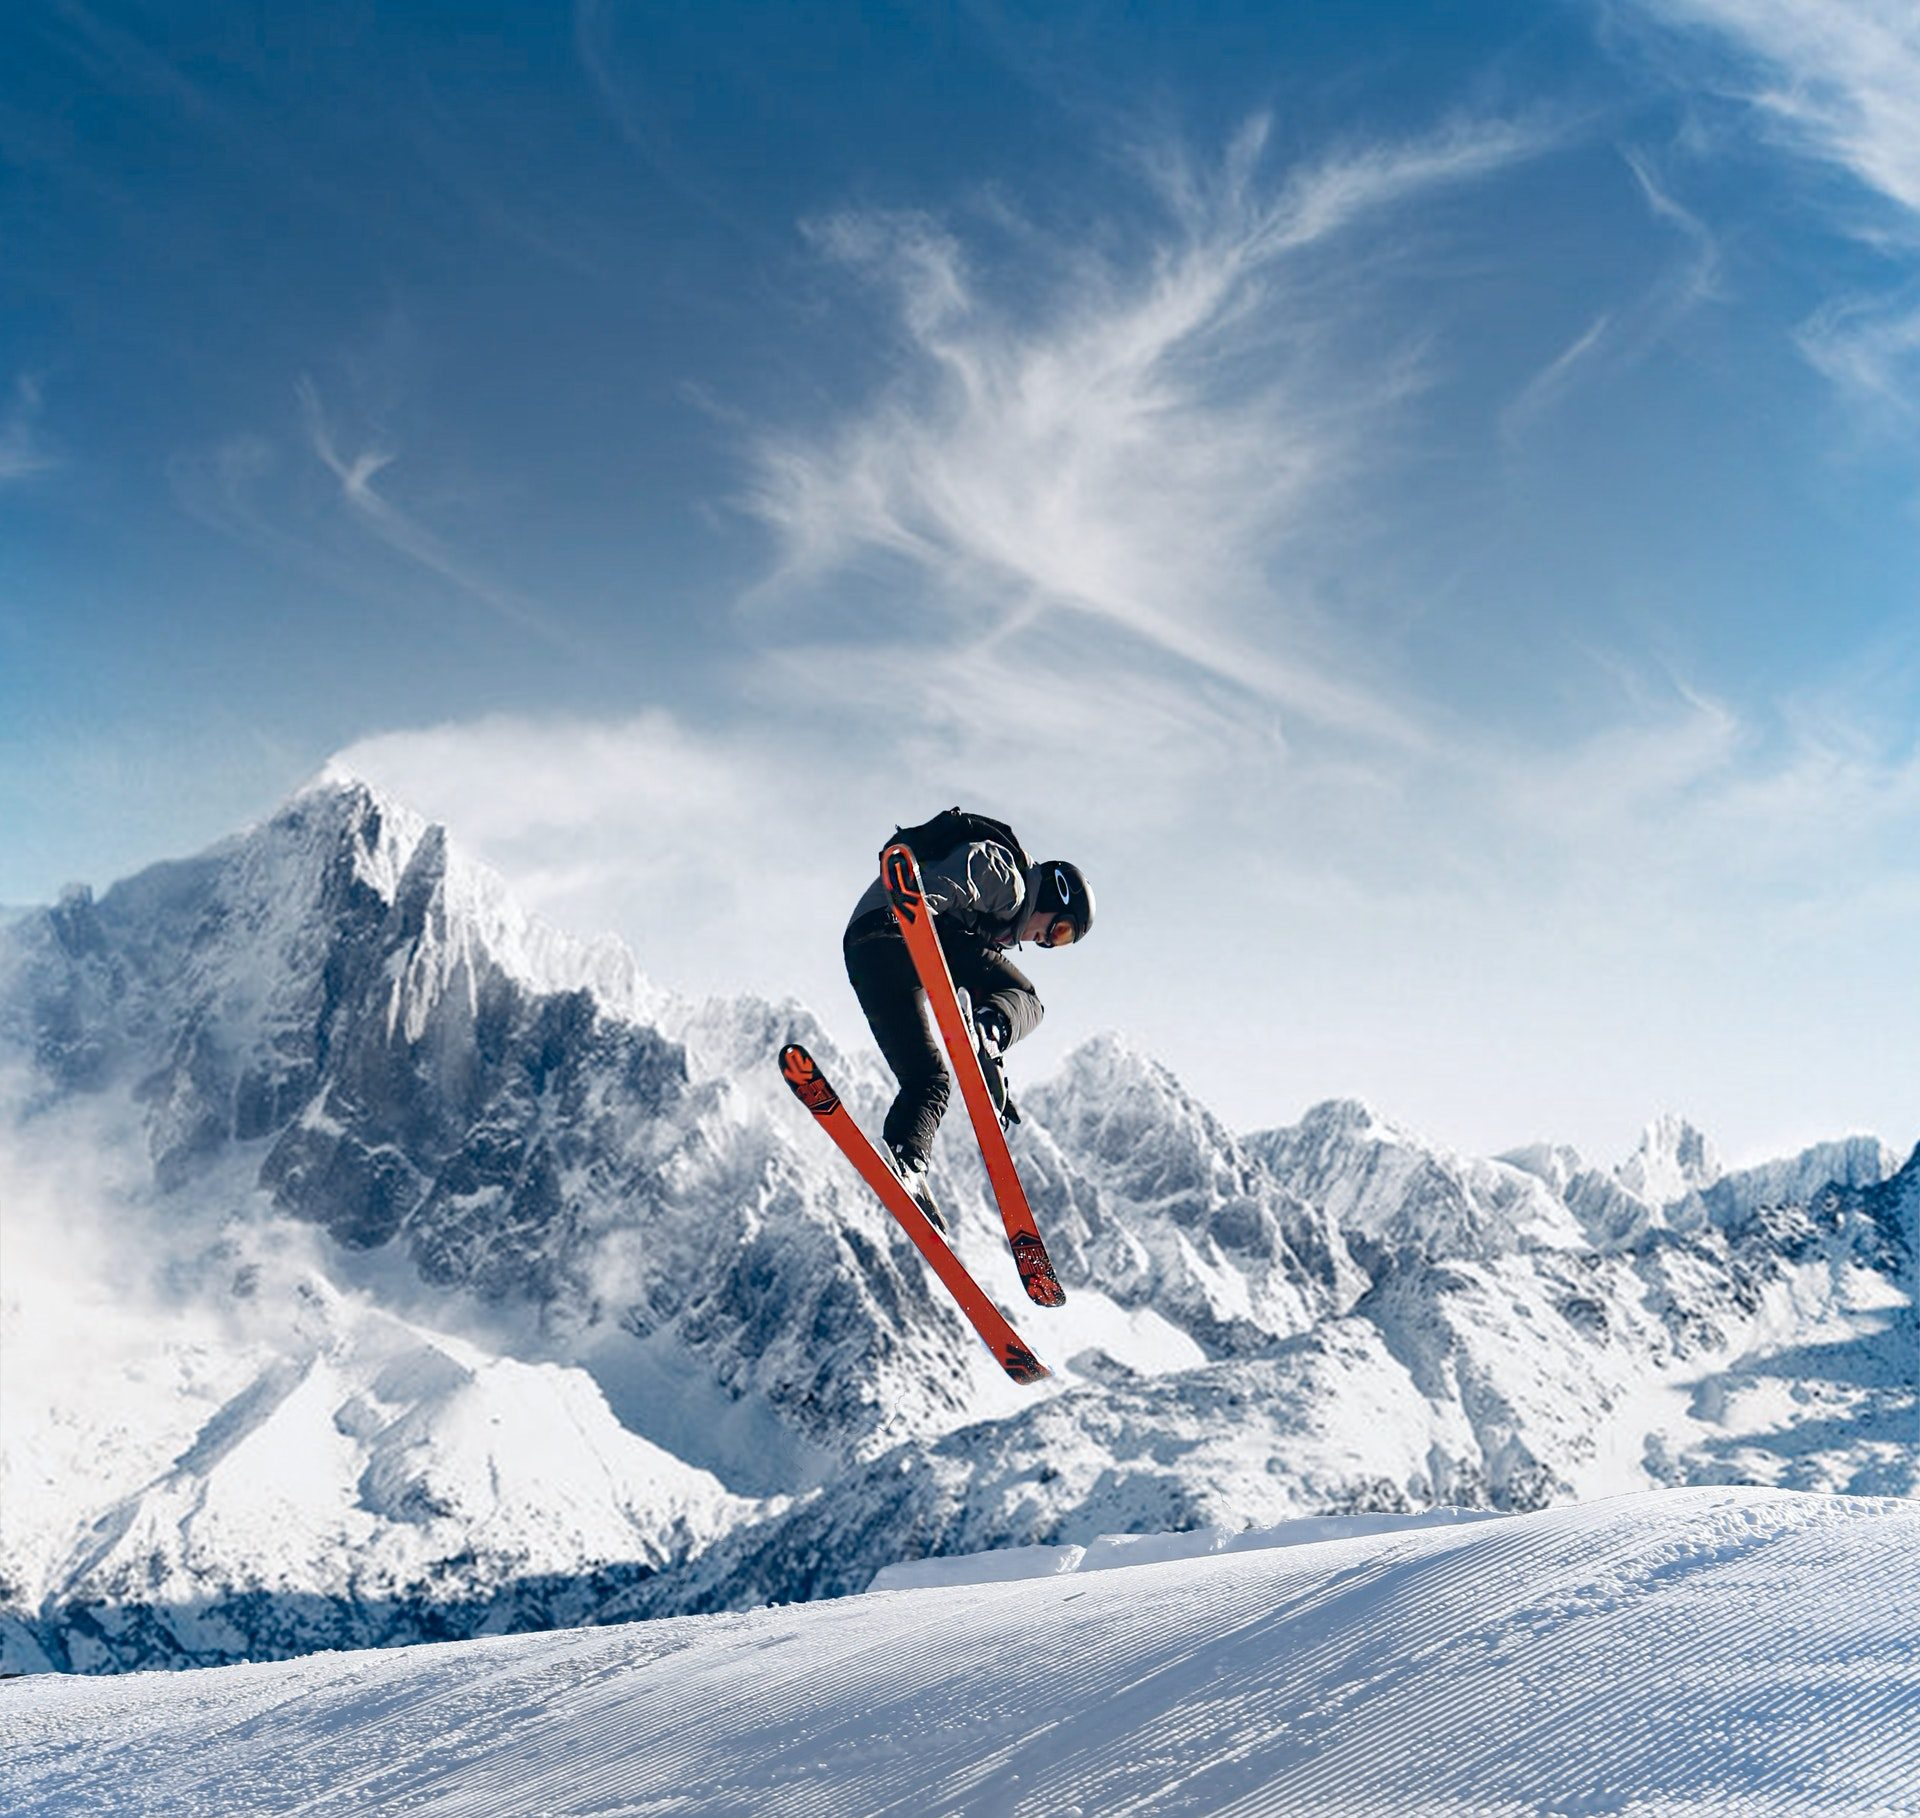 photo-of-person-skiing-on-snowfield-2433353